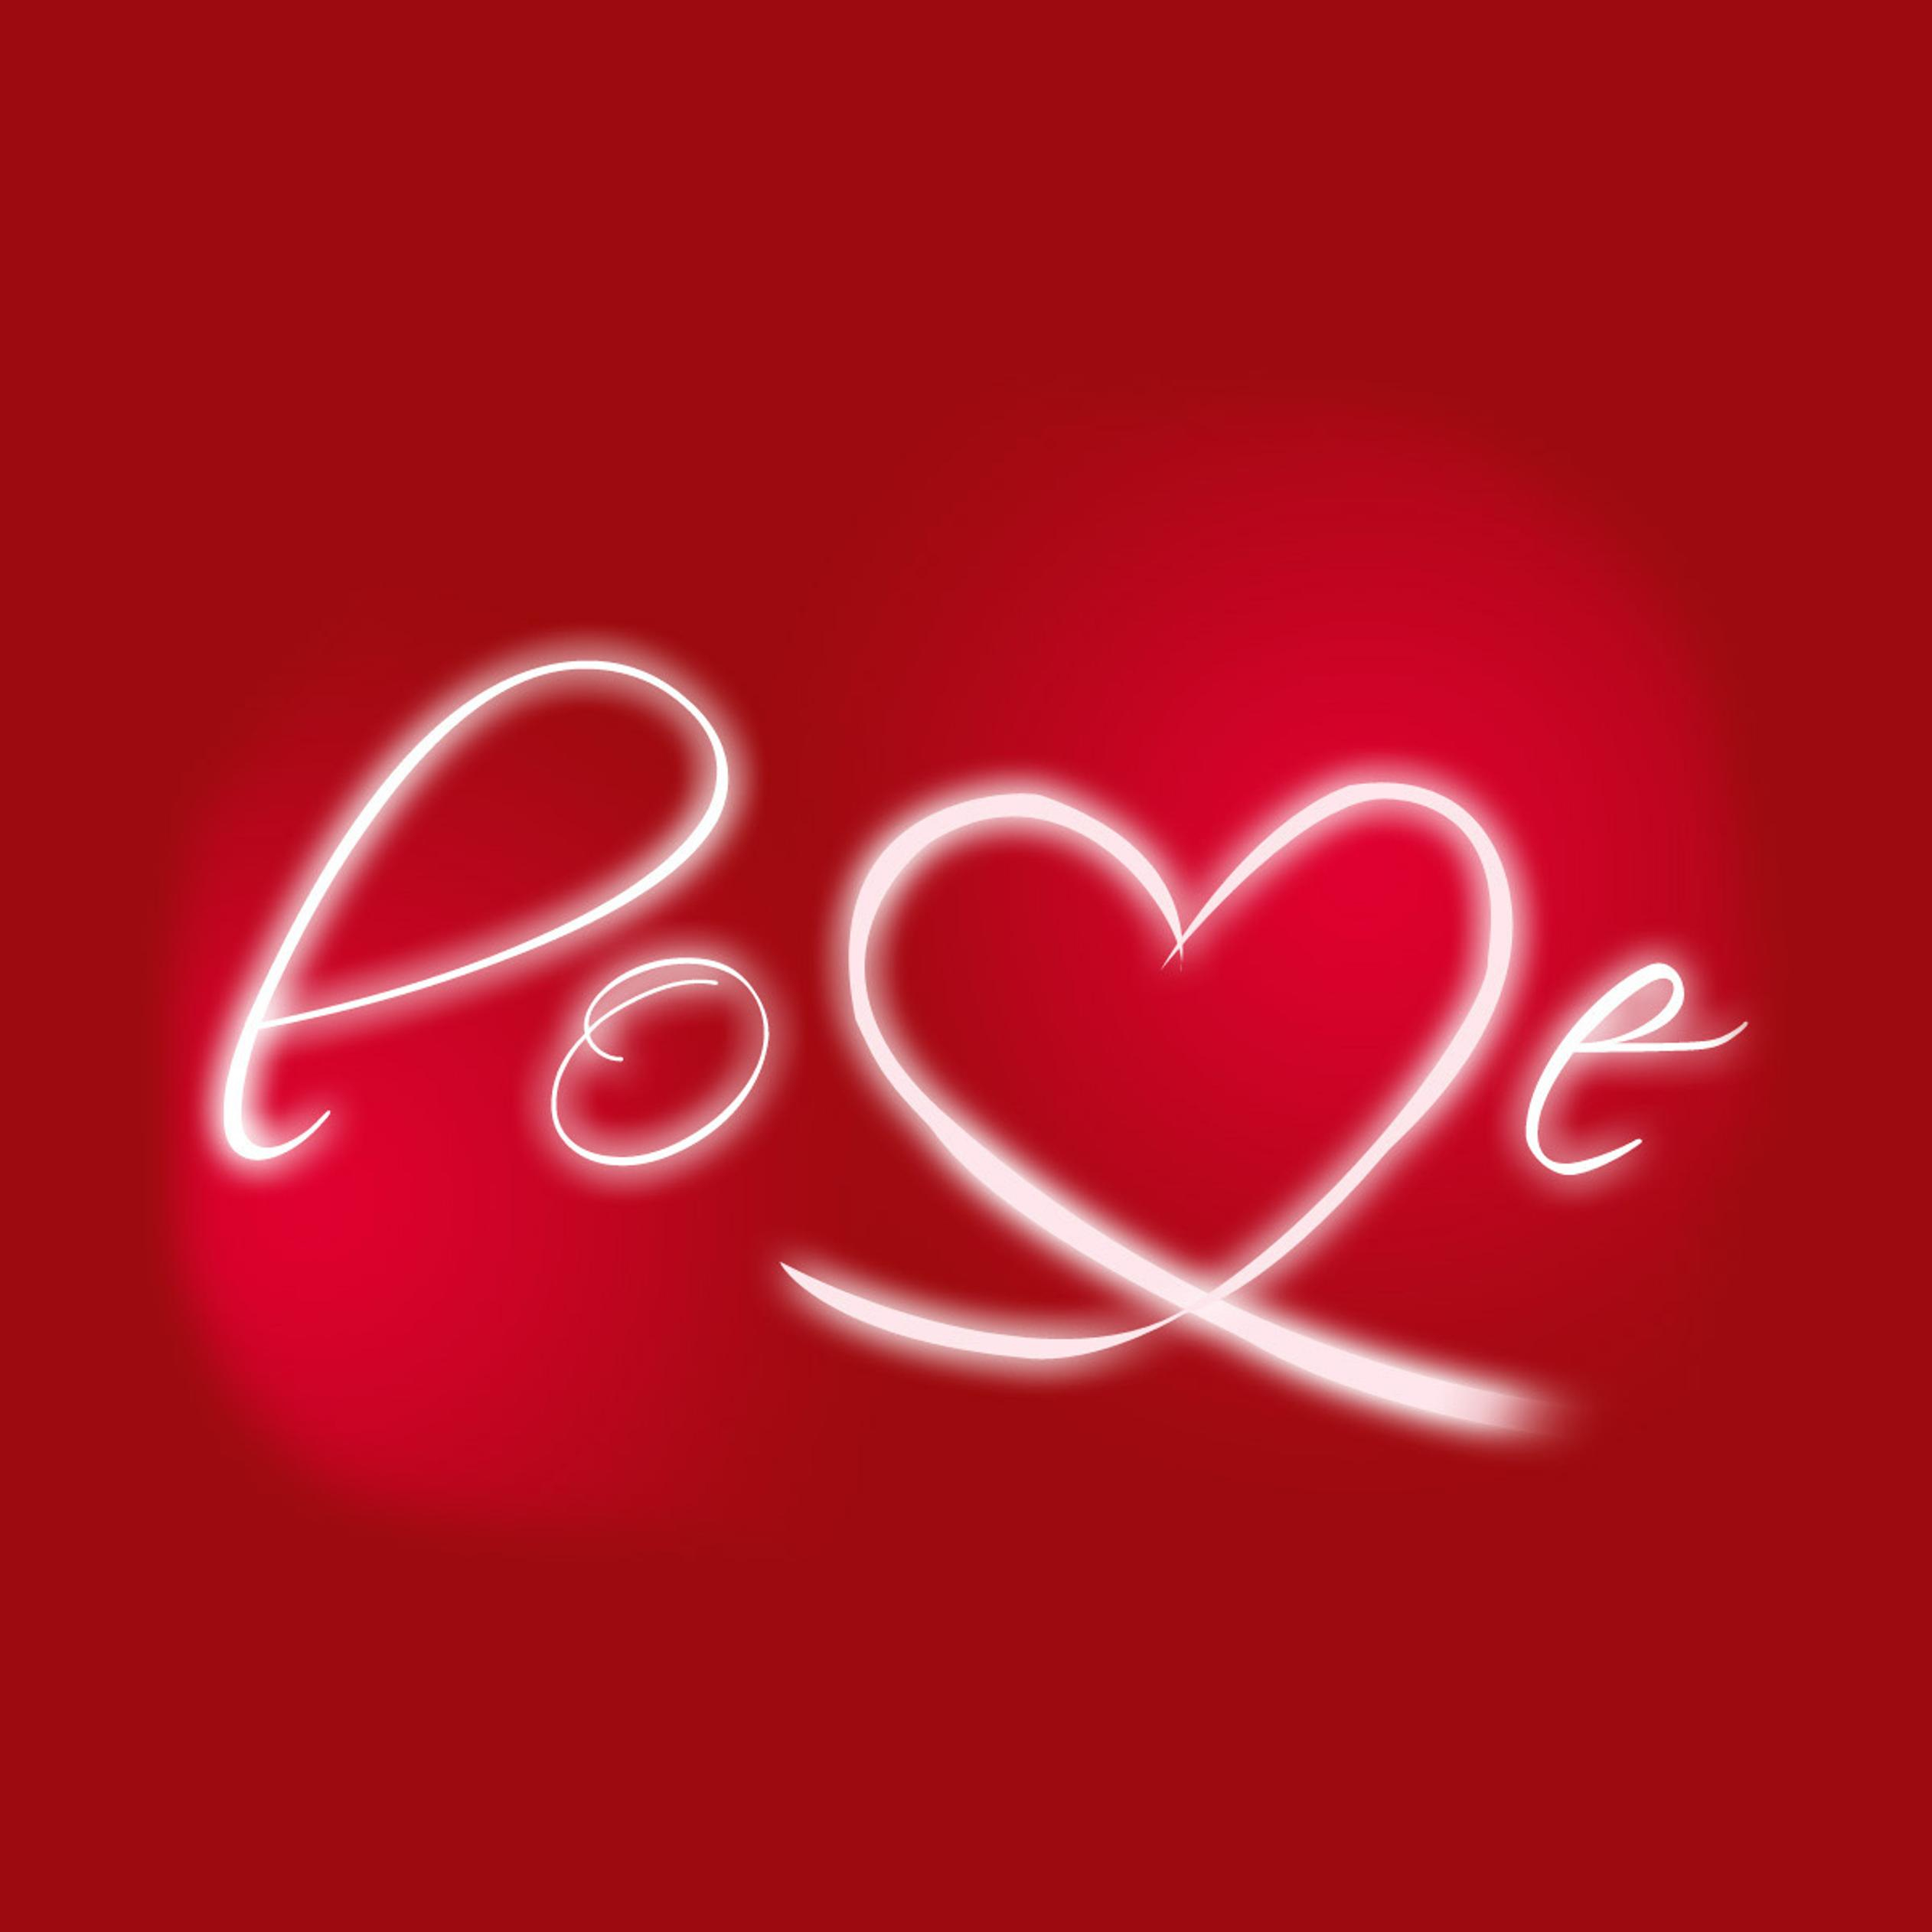 red love wallpaper hd happy valentines day 2524x2524